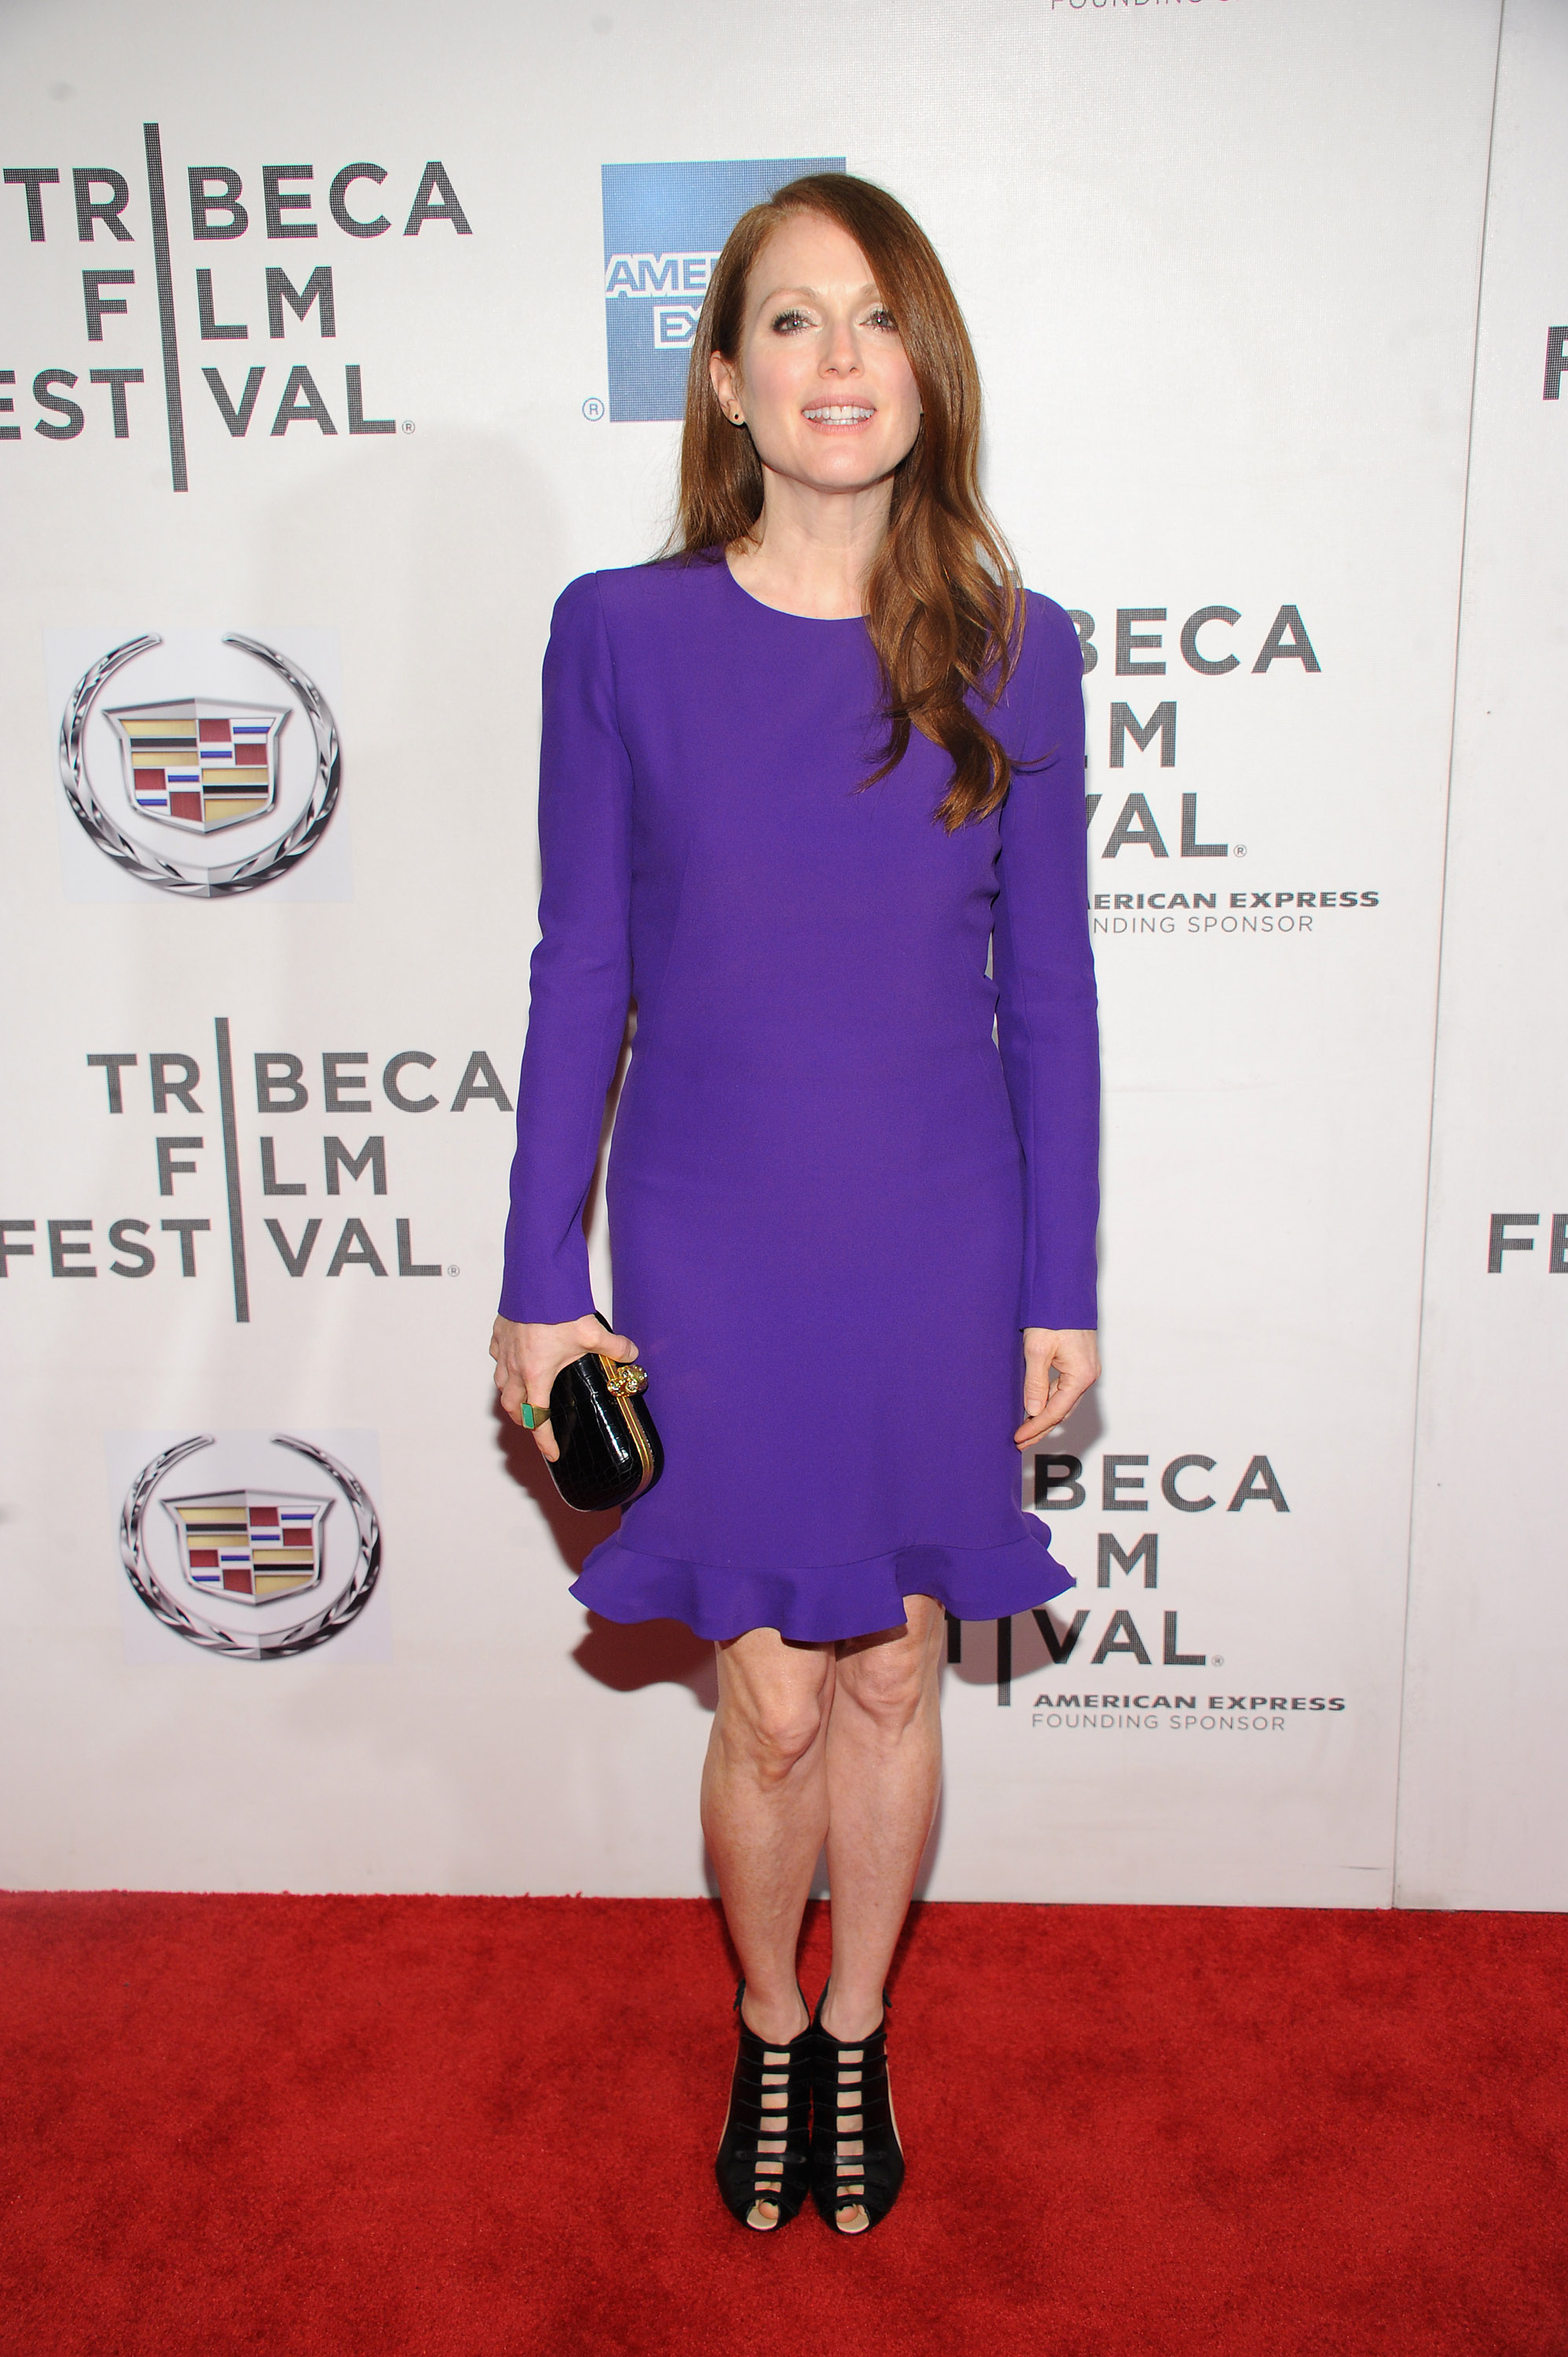 Julianne Moore stunned in purp